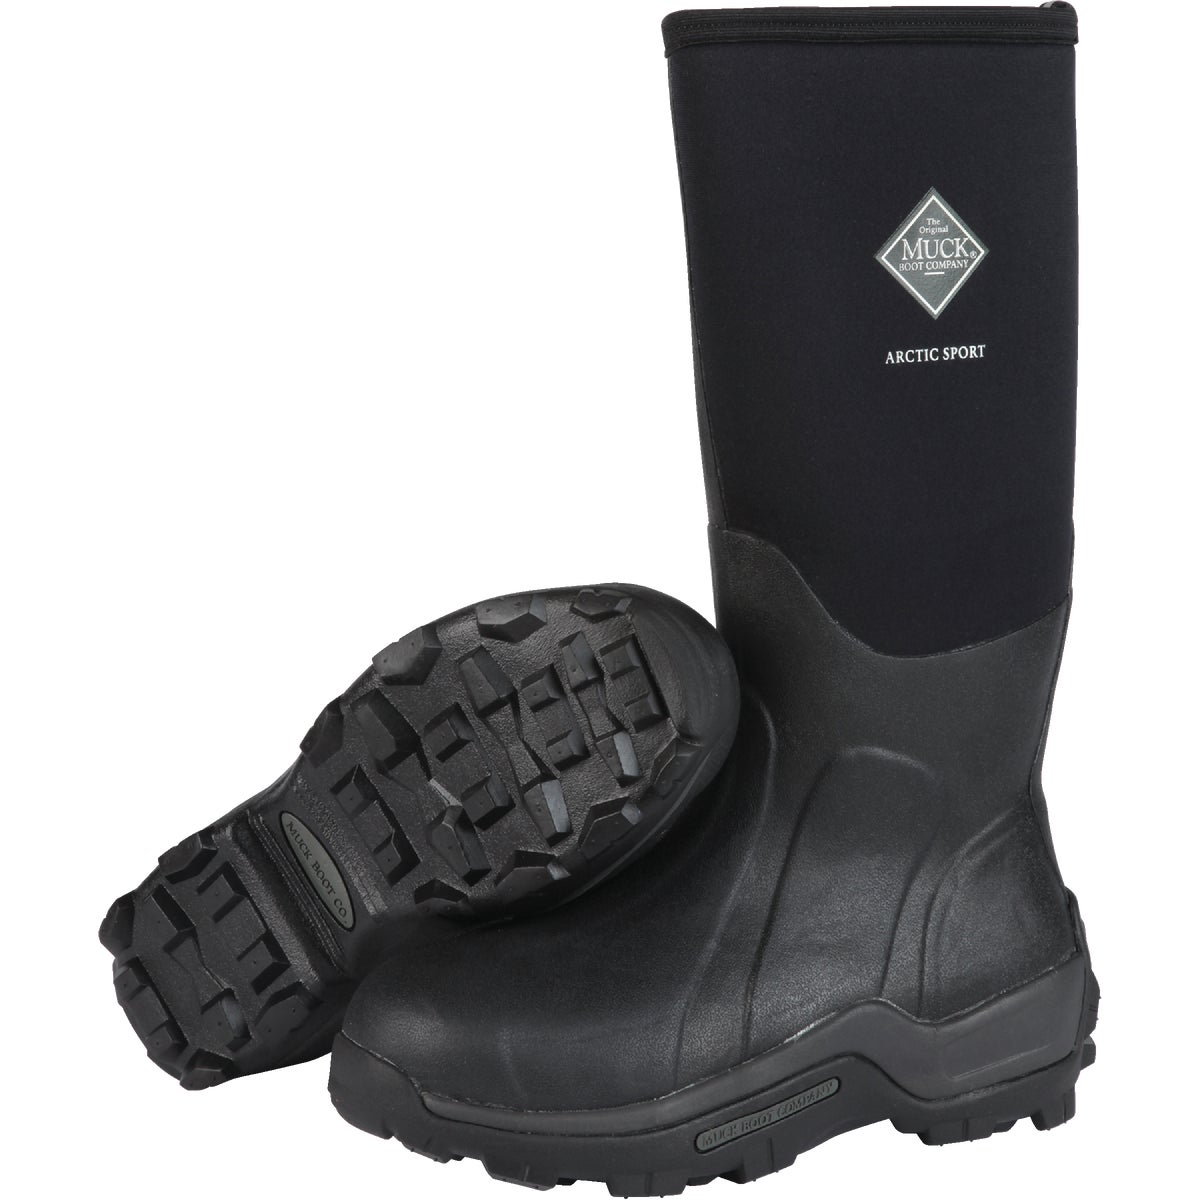 SZ 10 ARTIC SPRT HI BOOT - ASP000-10 by Muck Boot Team J